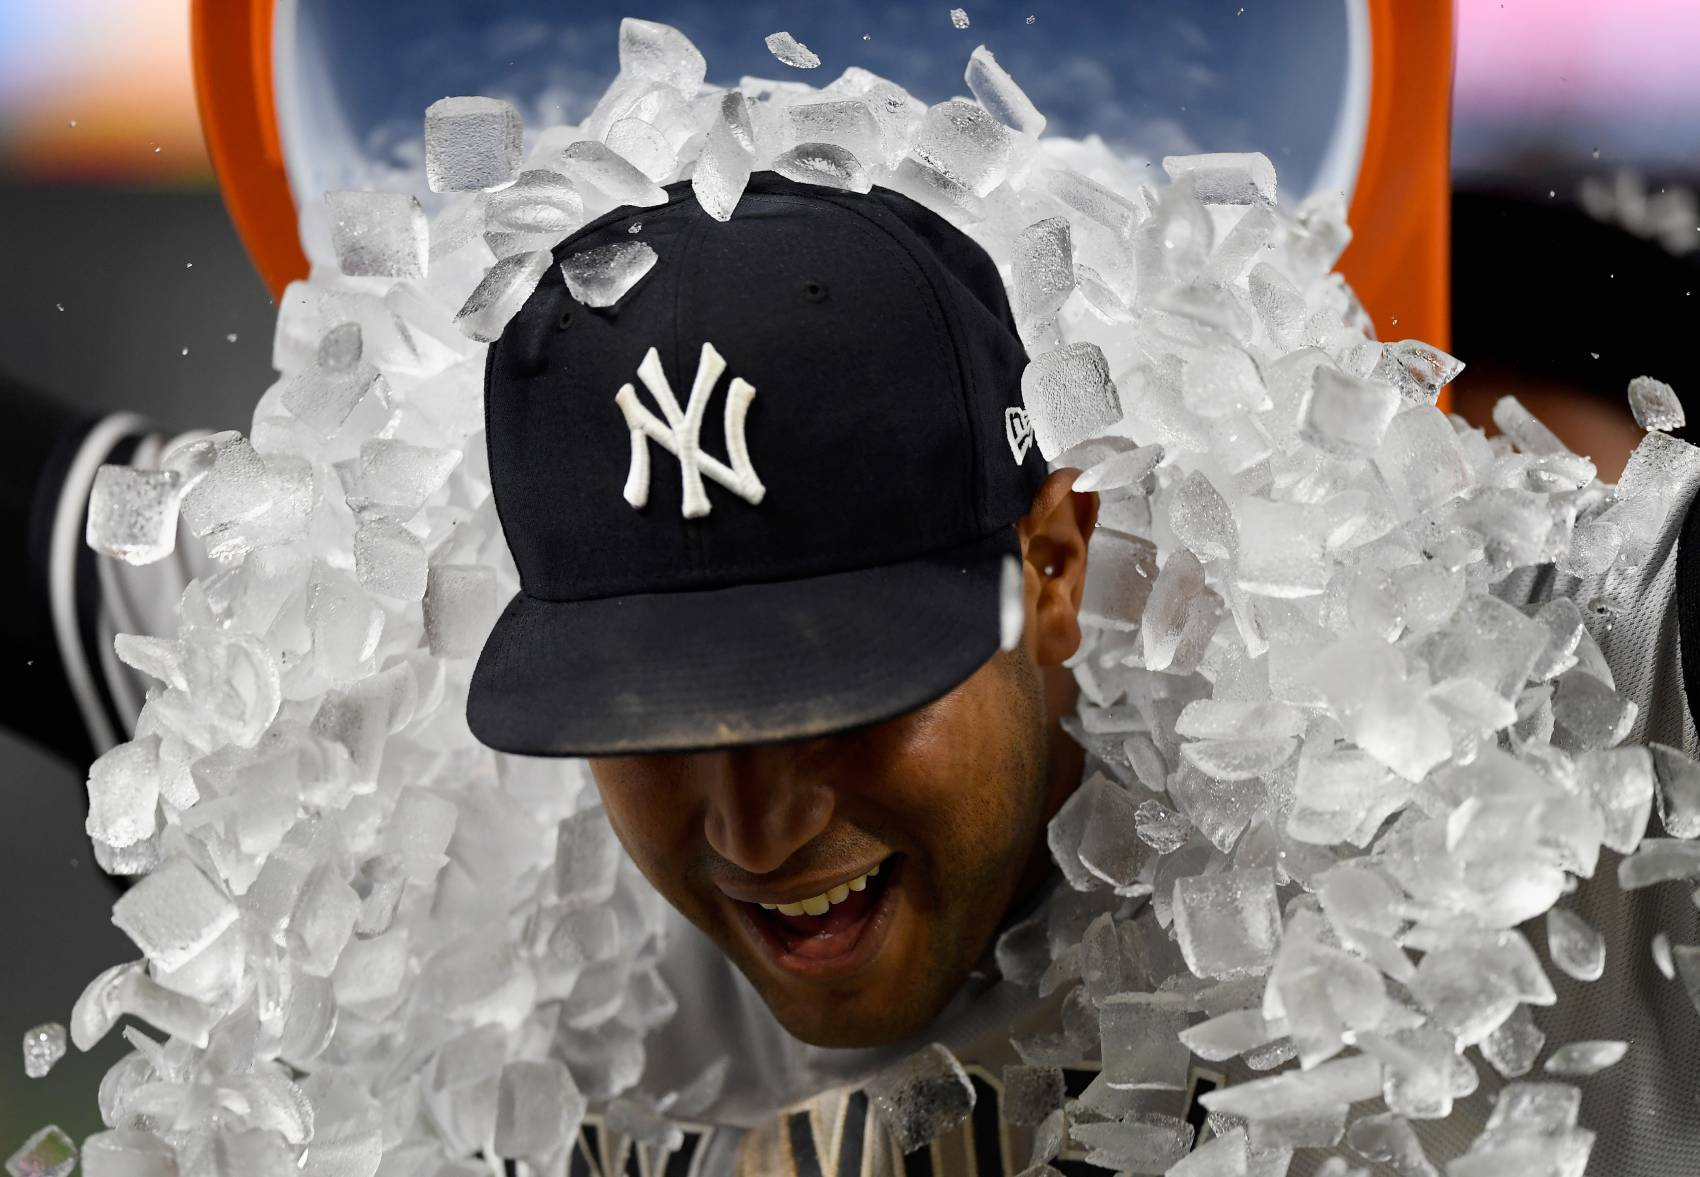 New York Yankees outfielder Aaron Hicks could make MLB history when the 2020 season opens.